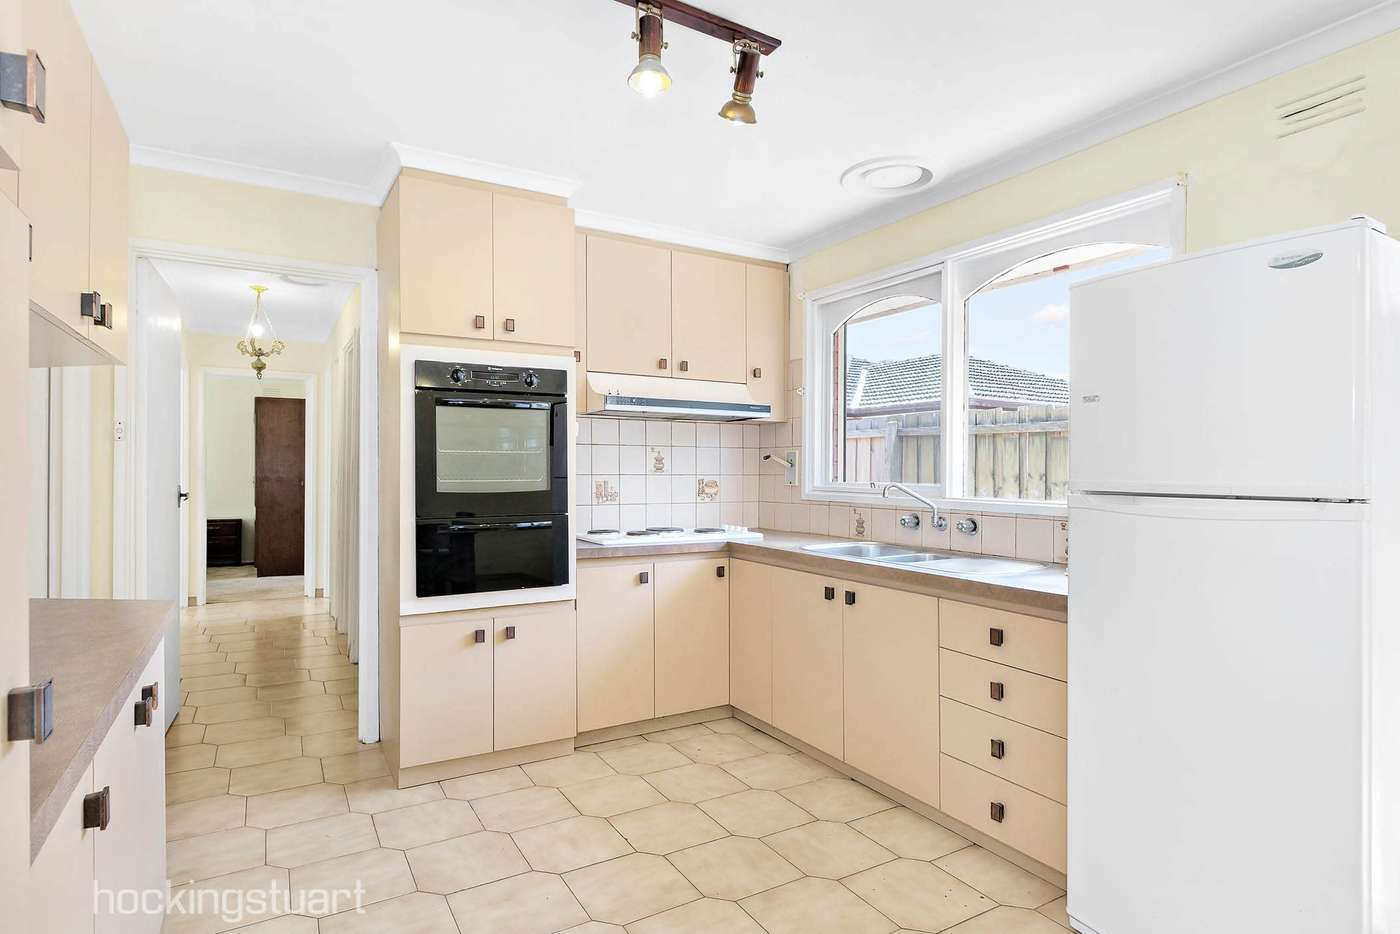 Sixth view of Homely house listing, 135 Aitken Street, Williamstown VIC 3016